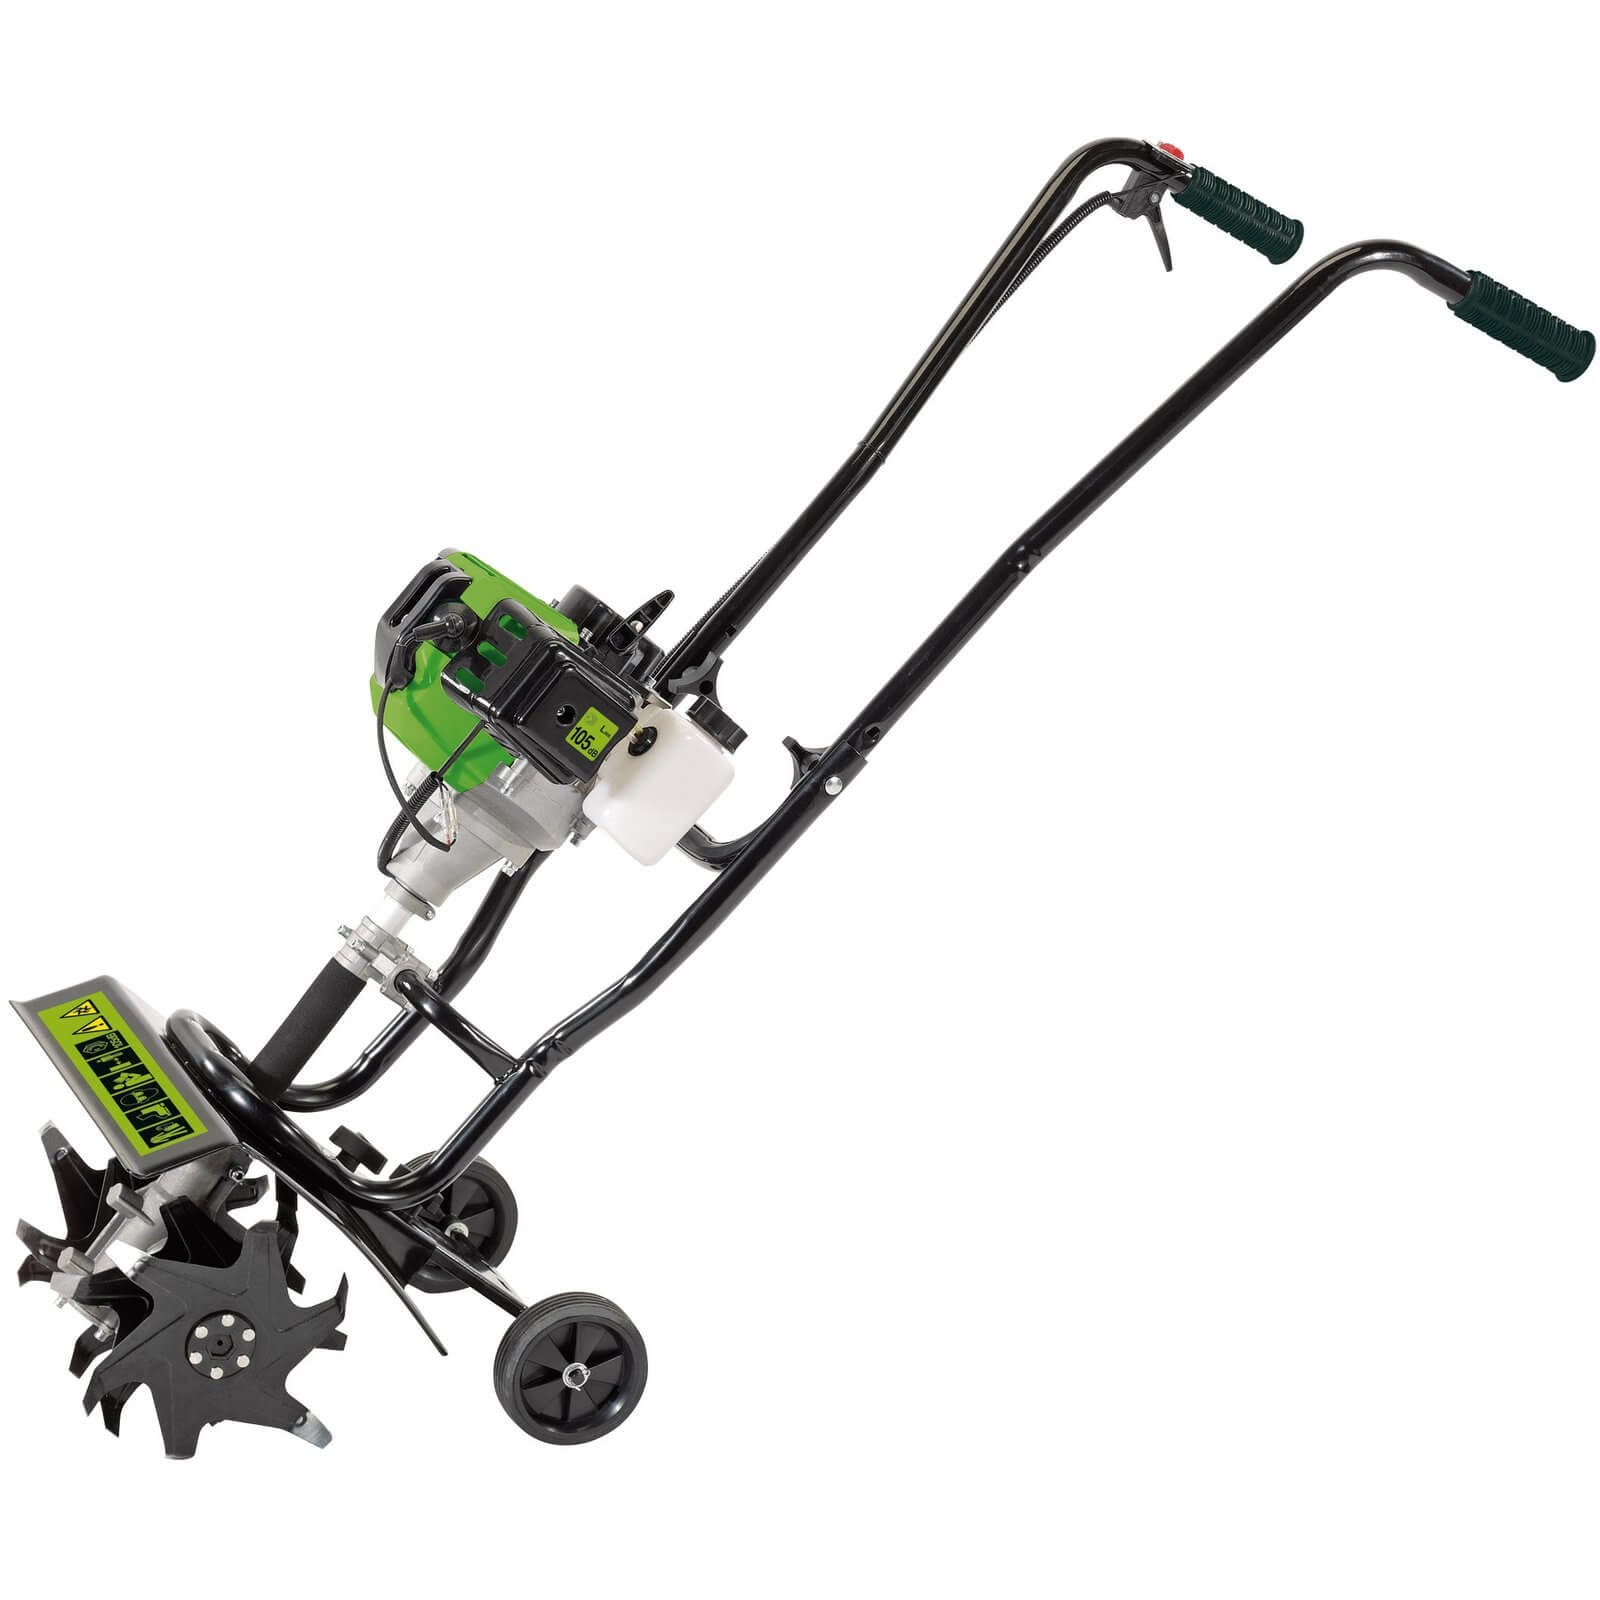 garden black ion cultivators max decker lithium charger included with tiller battery cultivator and cordless in volt p